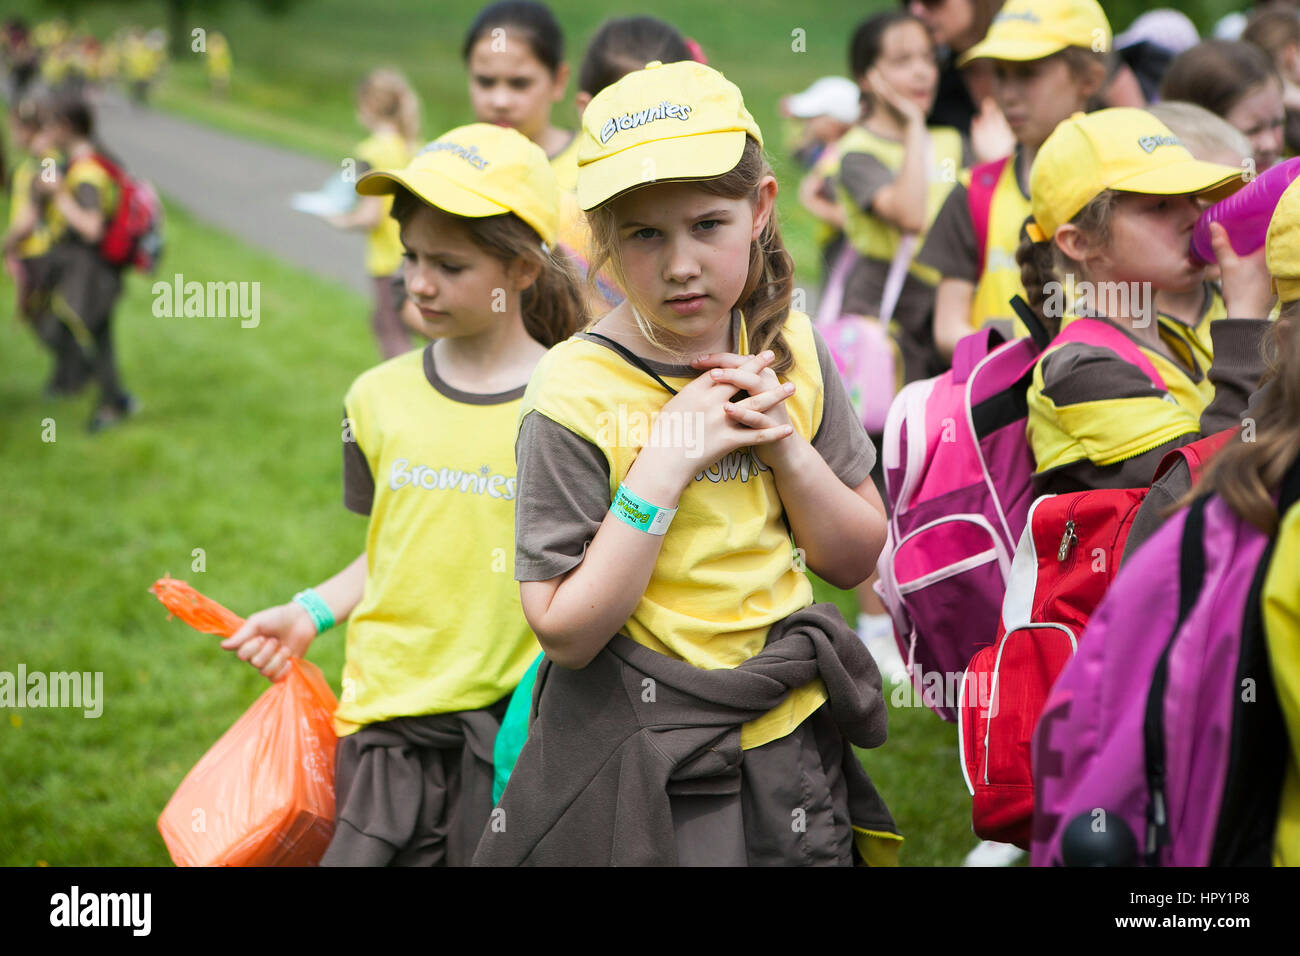 LONDON, ENGLAND - JULY 12, 2016 A portrait of a Brownie girl - Stock Image